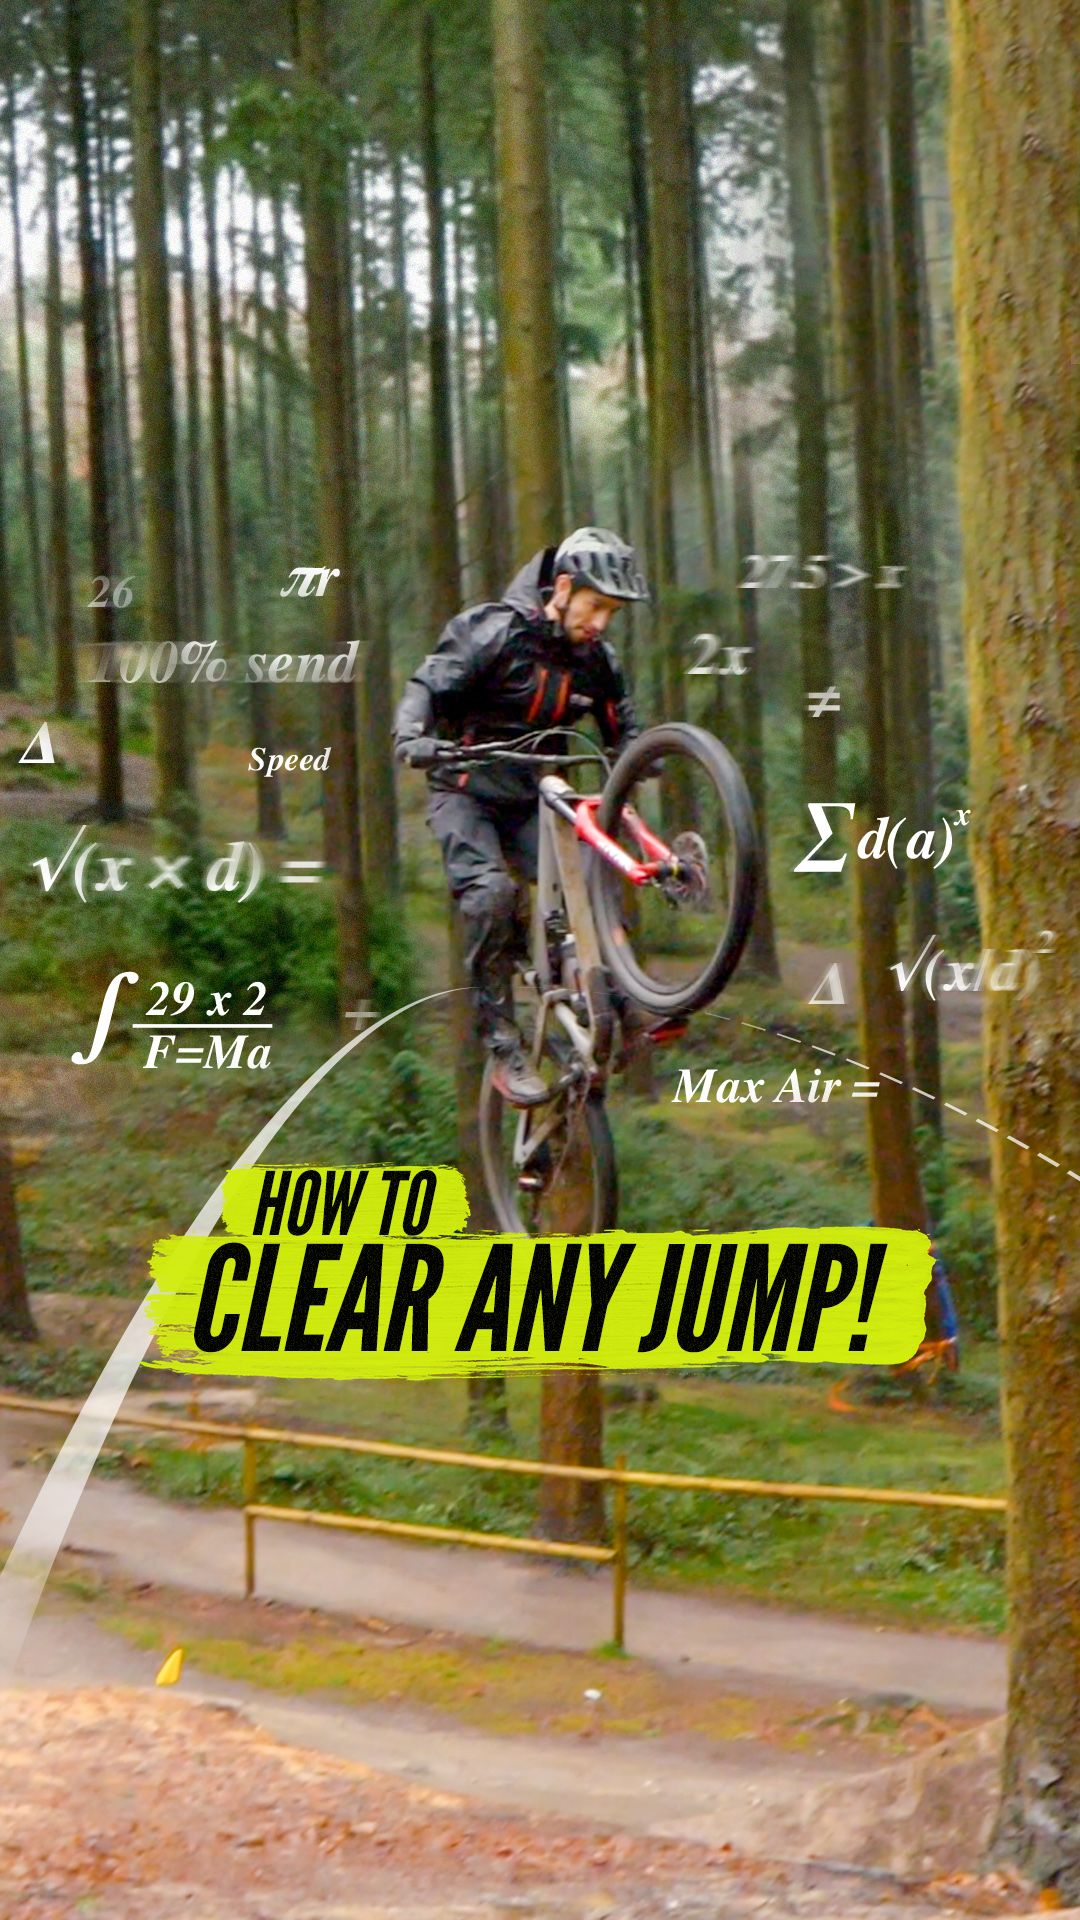 How To Clear Any Jump On Your Mountain Bike Mtb Skills Mtb Bike Mountain Mountain Biking Mtb Riding